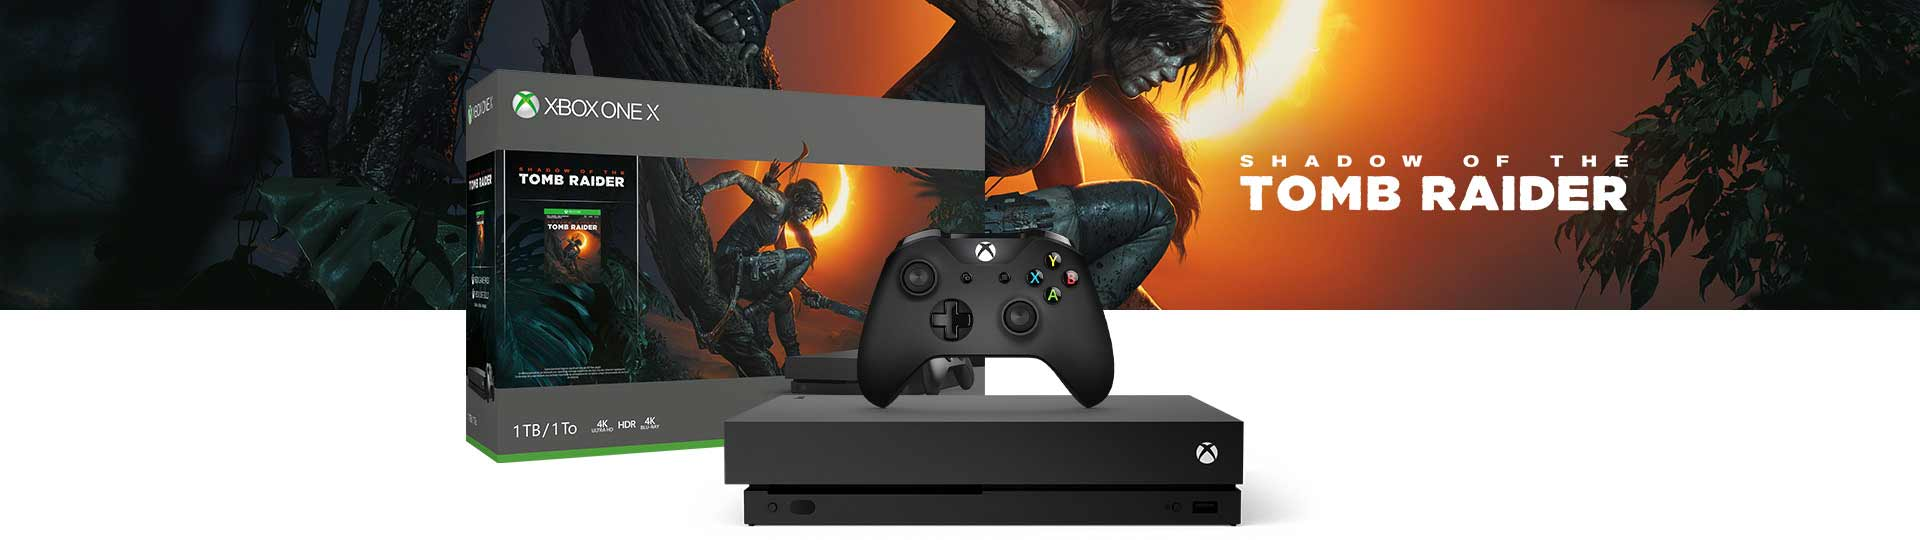 Shadow of the Tomb Raider Xbox One Bundles